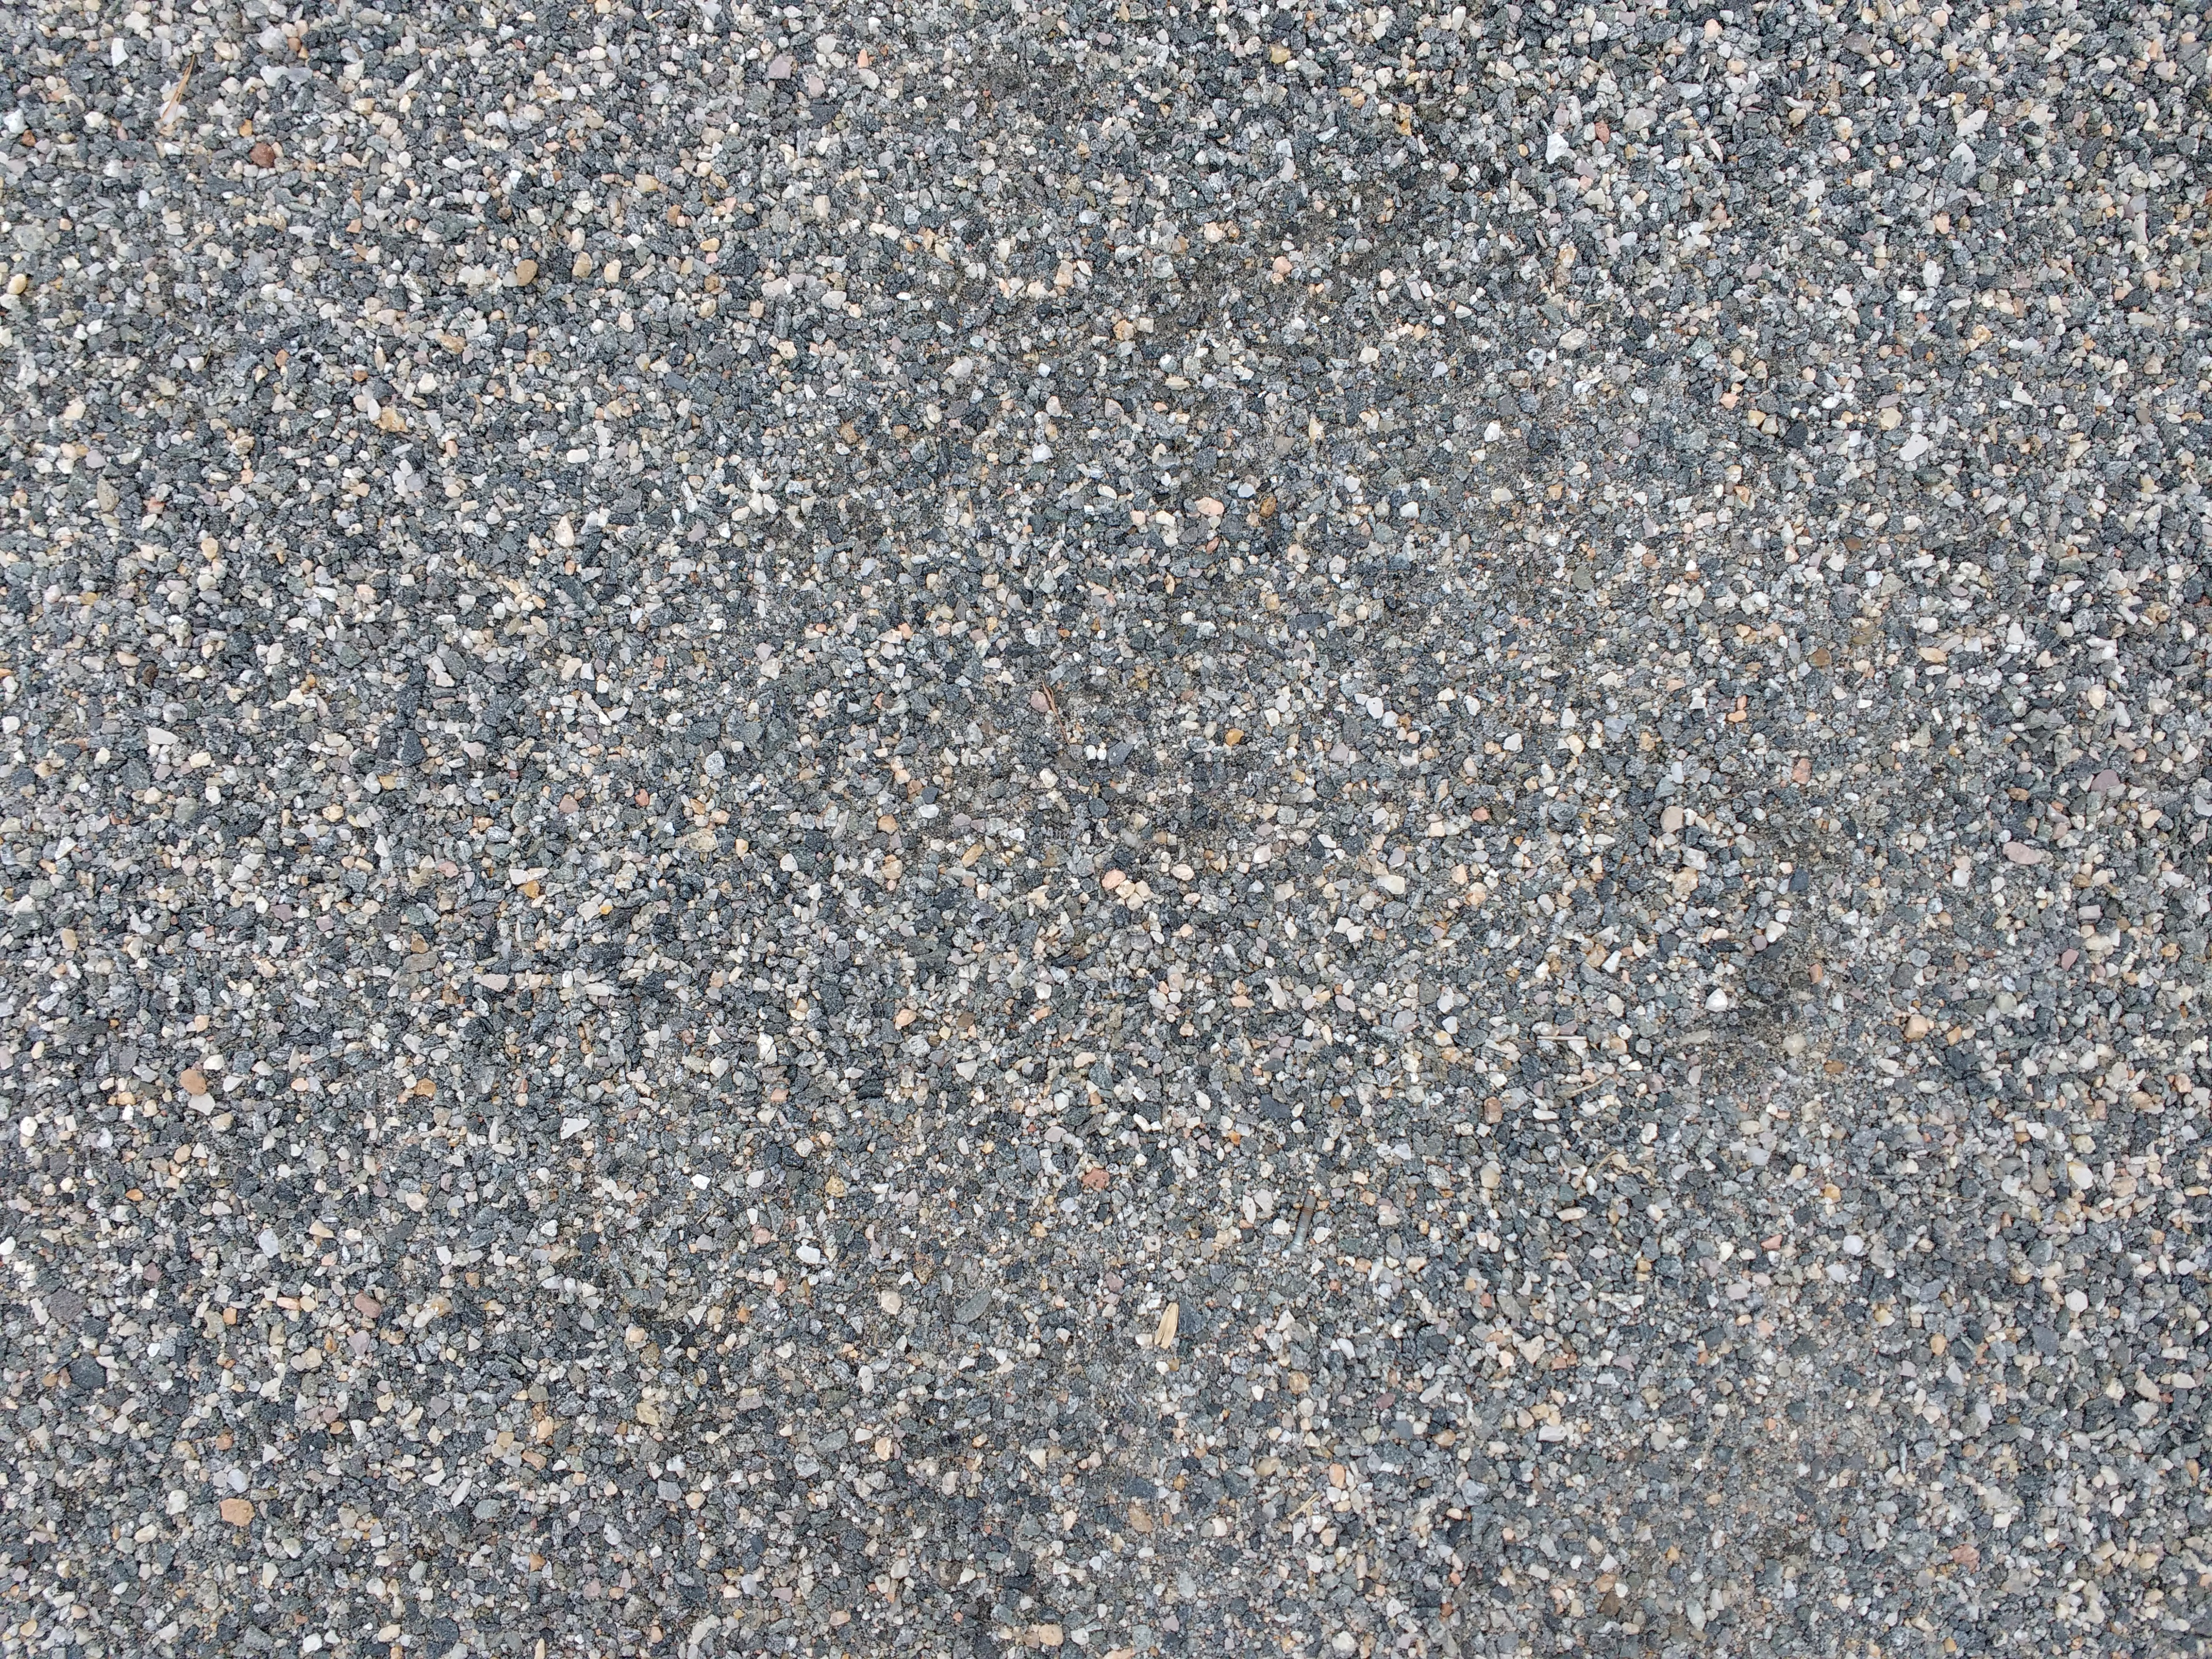 Crusher Fines Texture Picture Free Photograph Photos